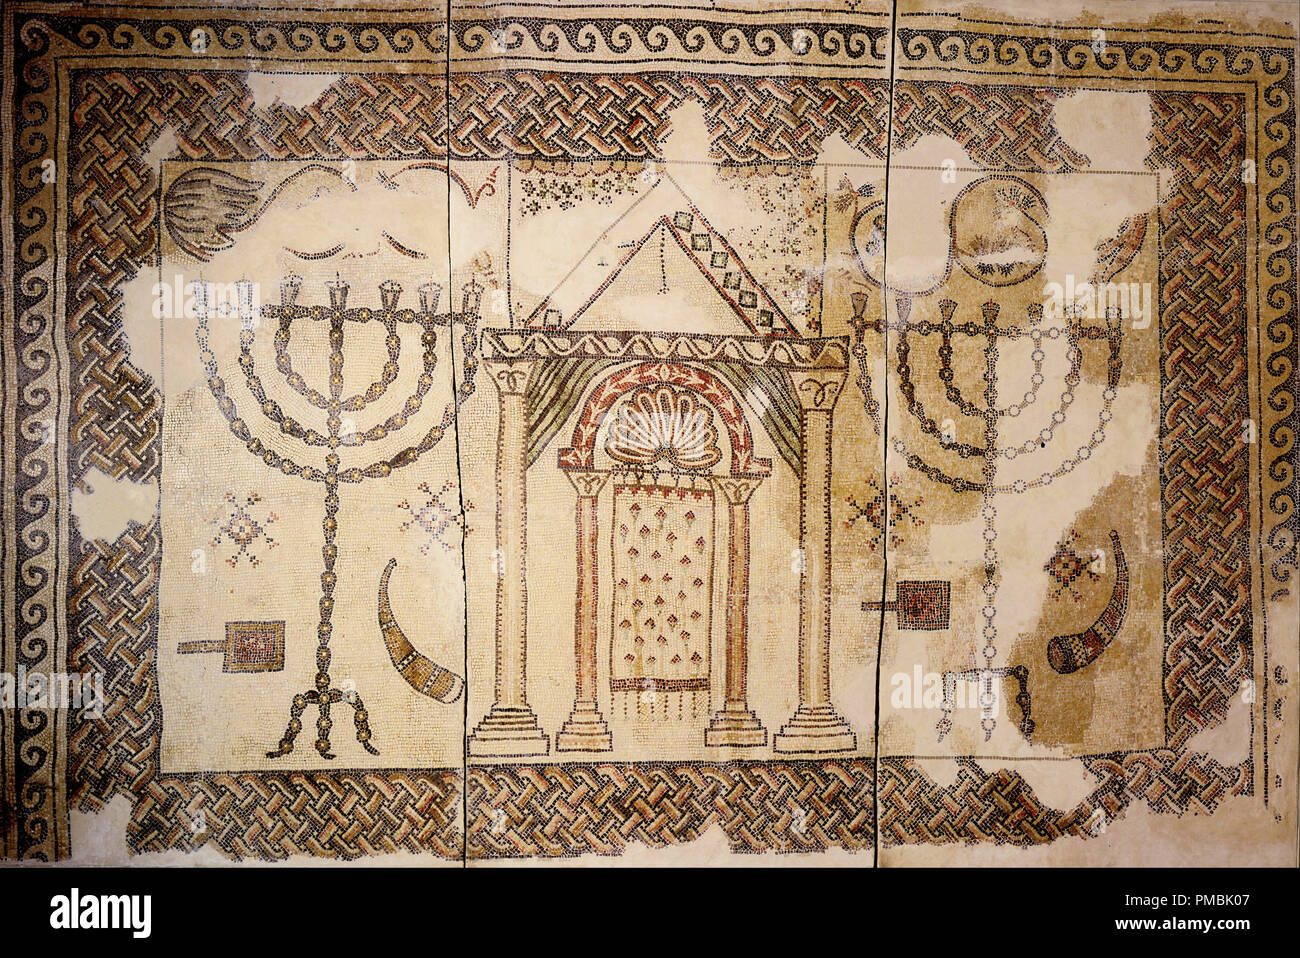 Synagogue floor. Date/Period: Byzantine Period, 5th century - Byzantine Period, 7th century. Mosaic. Stone and glass mosaic Stone and glass mosaic. Author: UNKNOWN. - Stock Image